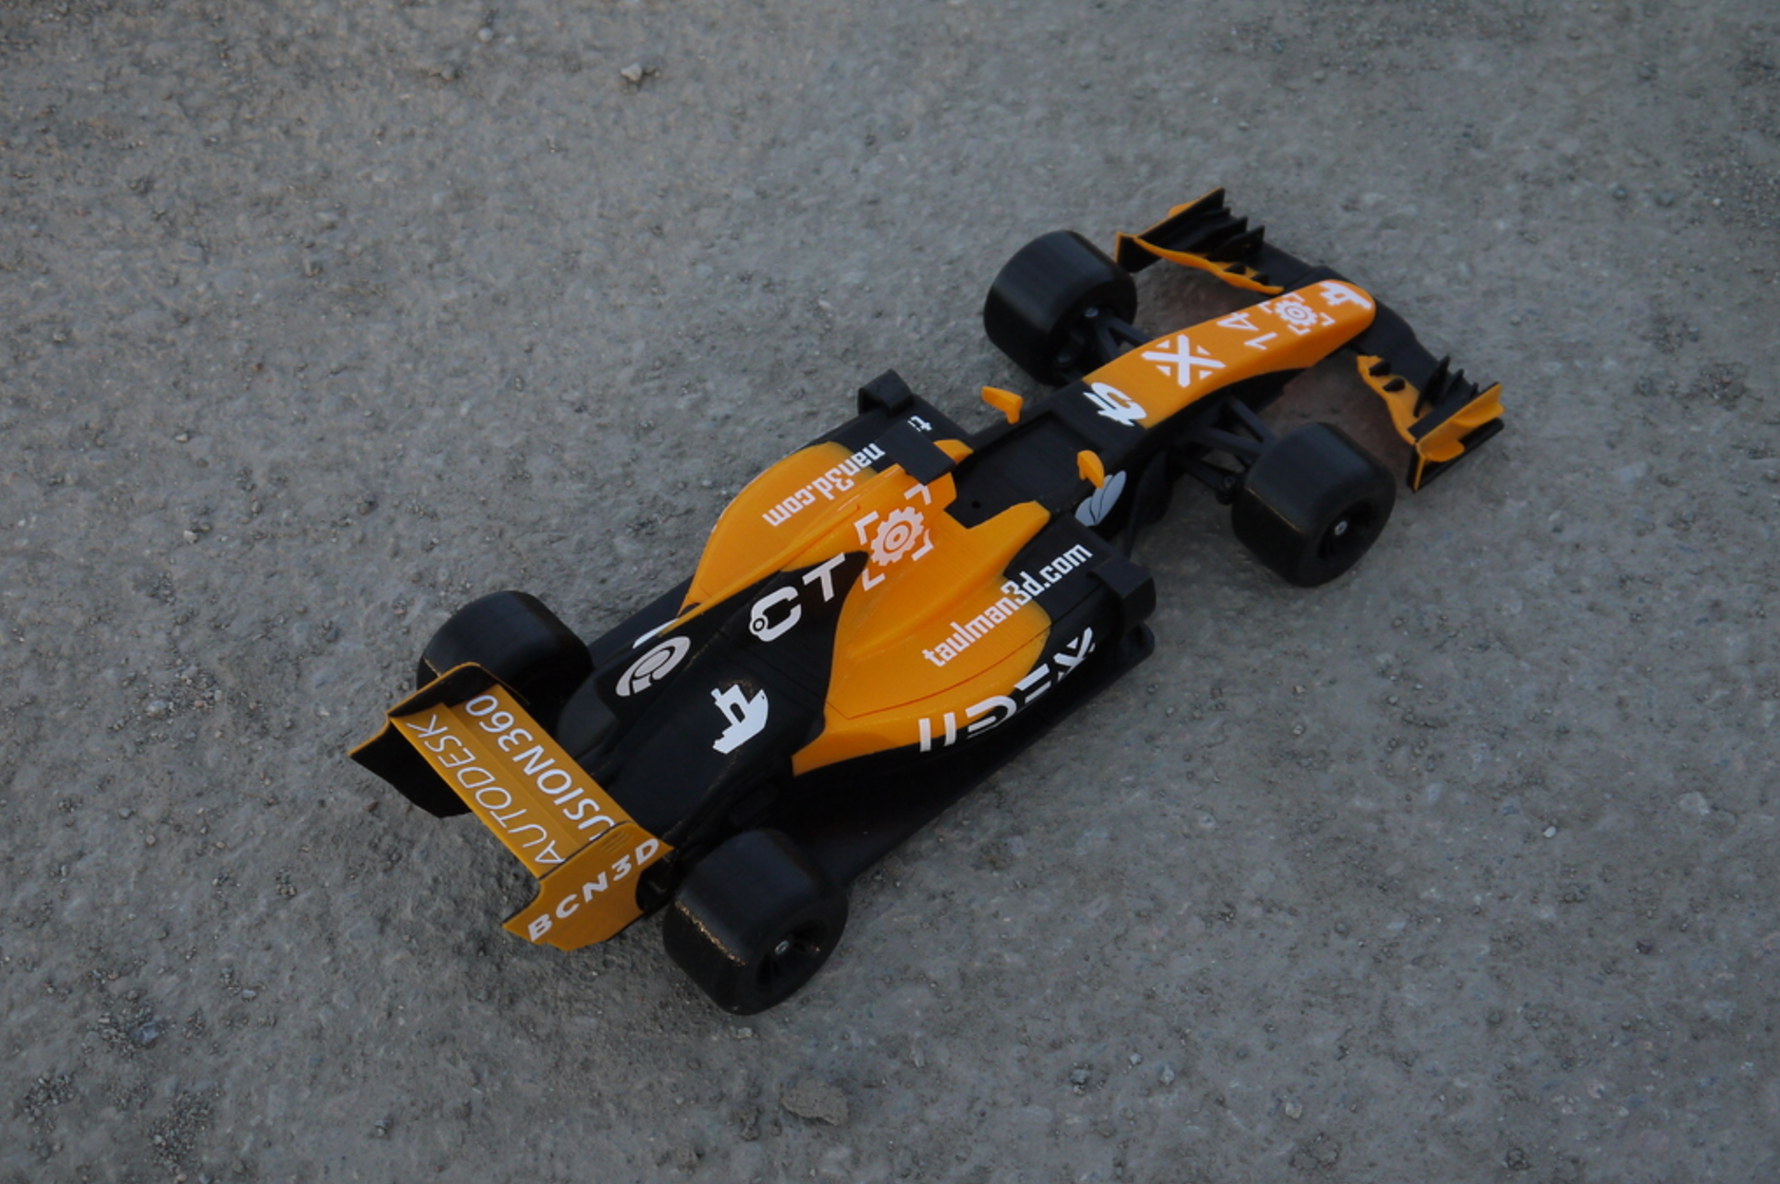 OpenRC F1 Dual Color McLaren Edition 3D Printing Free STL file Cults4.png Download free STL file OpenRC F1 Dual Color McLaren Edition • 3D printer model, DanielNoree